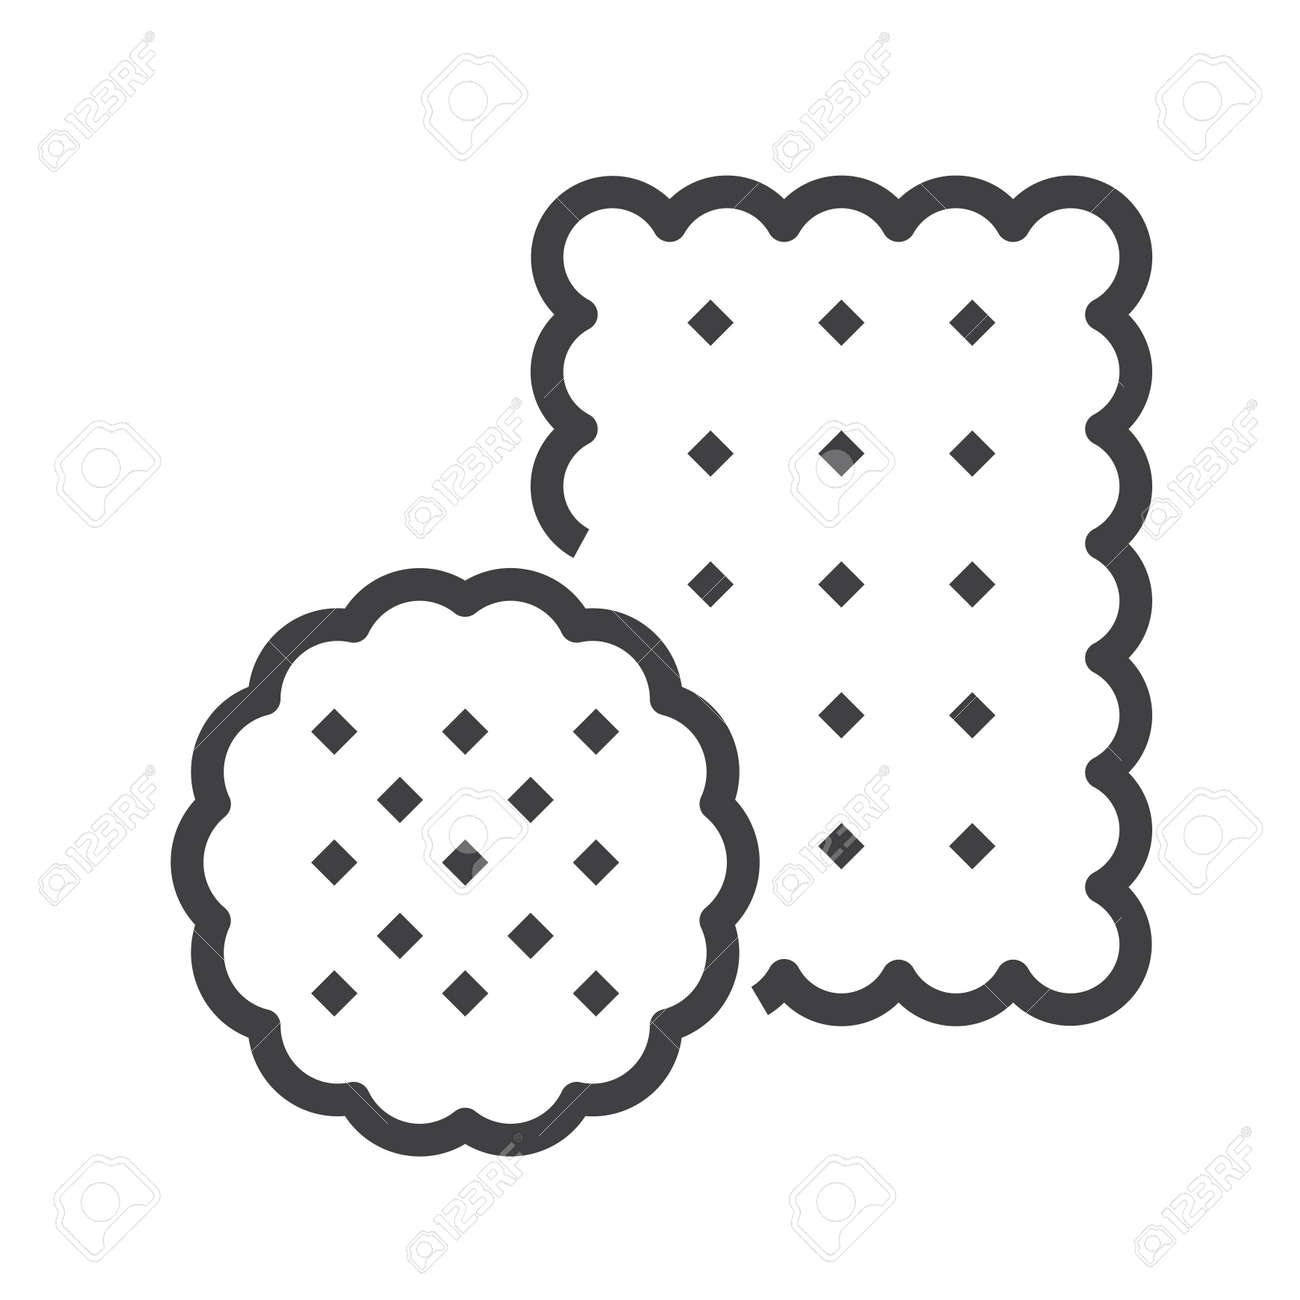 biscuit vector icon royalty free cliparts vectors and stock illustration image 127646641 biscuit vector icon